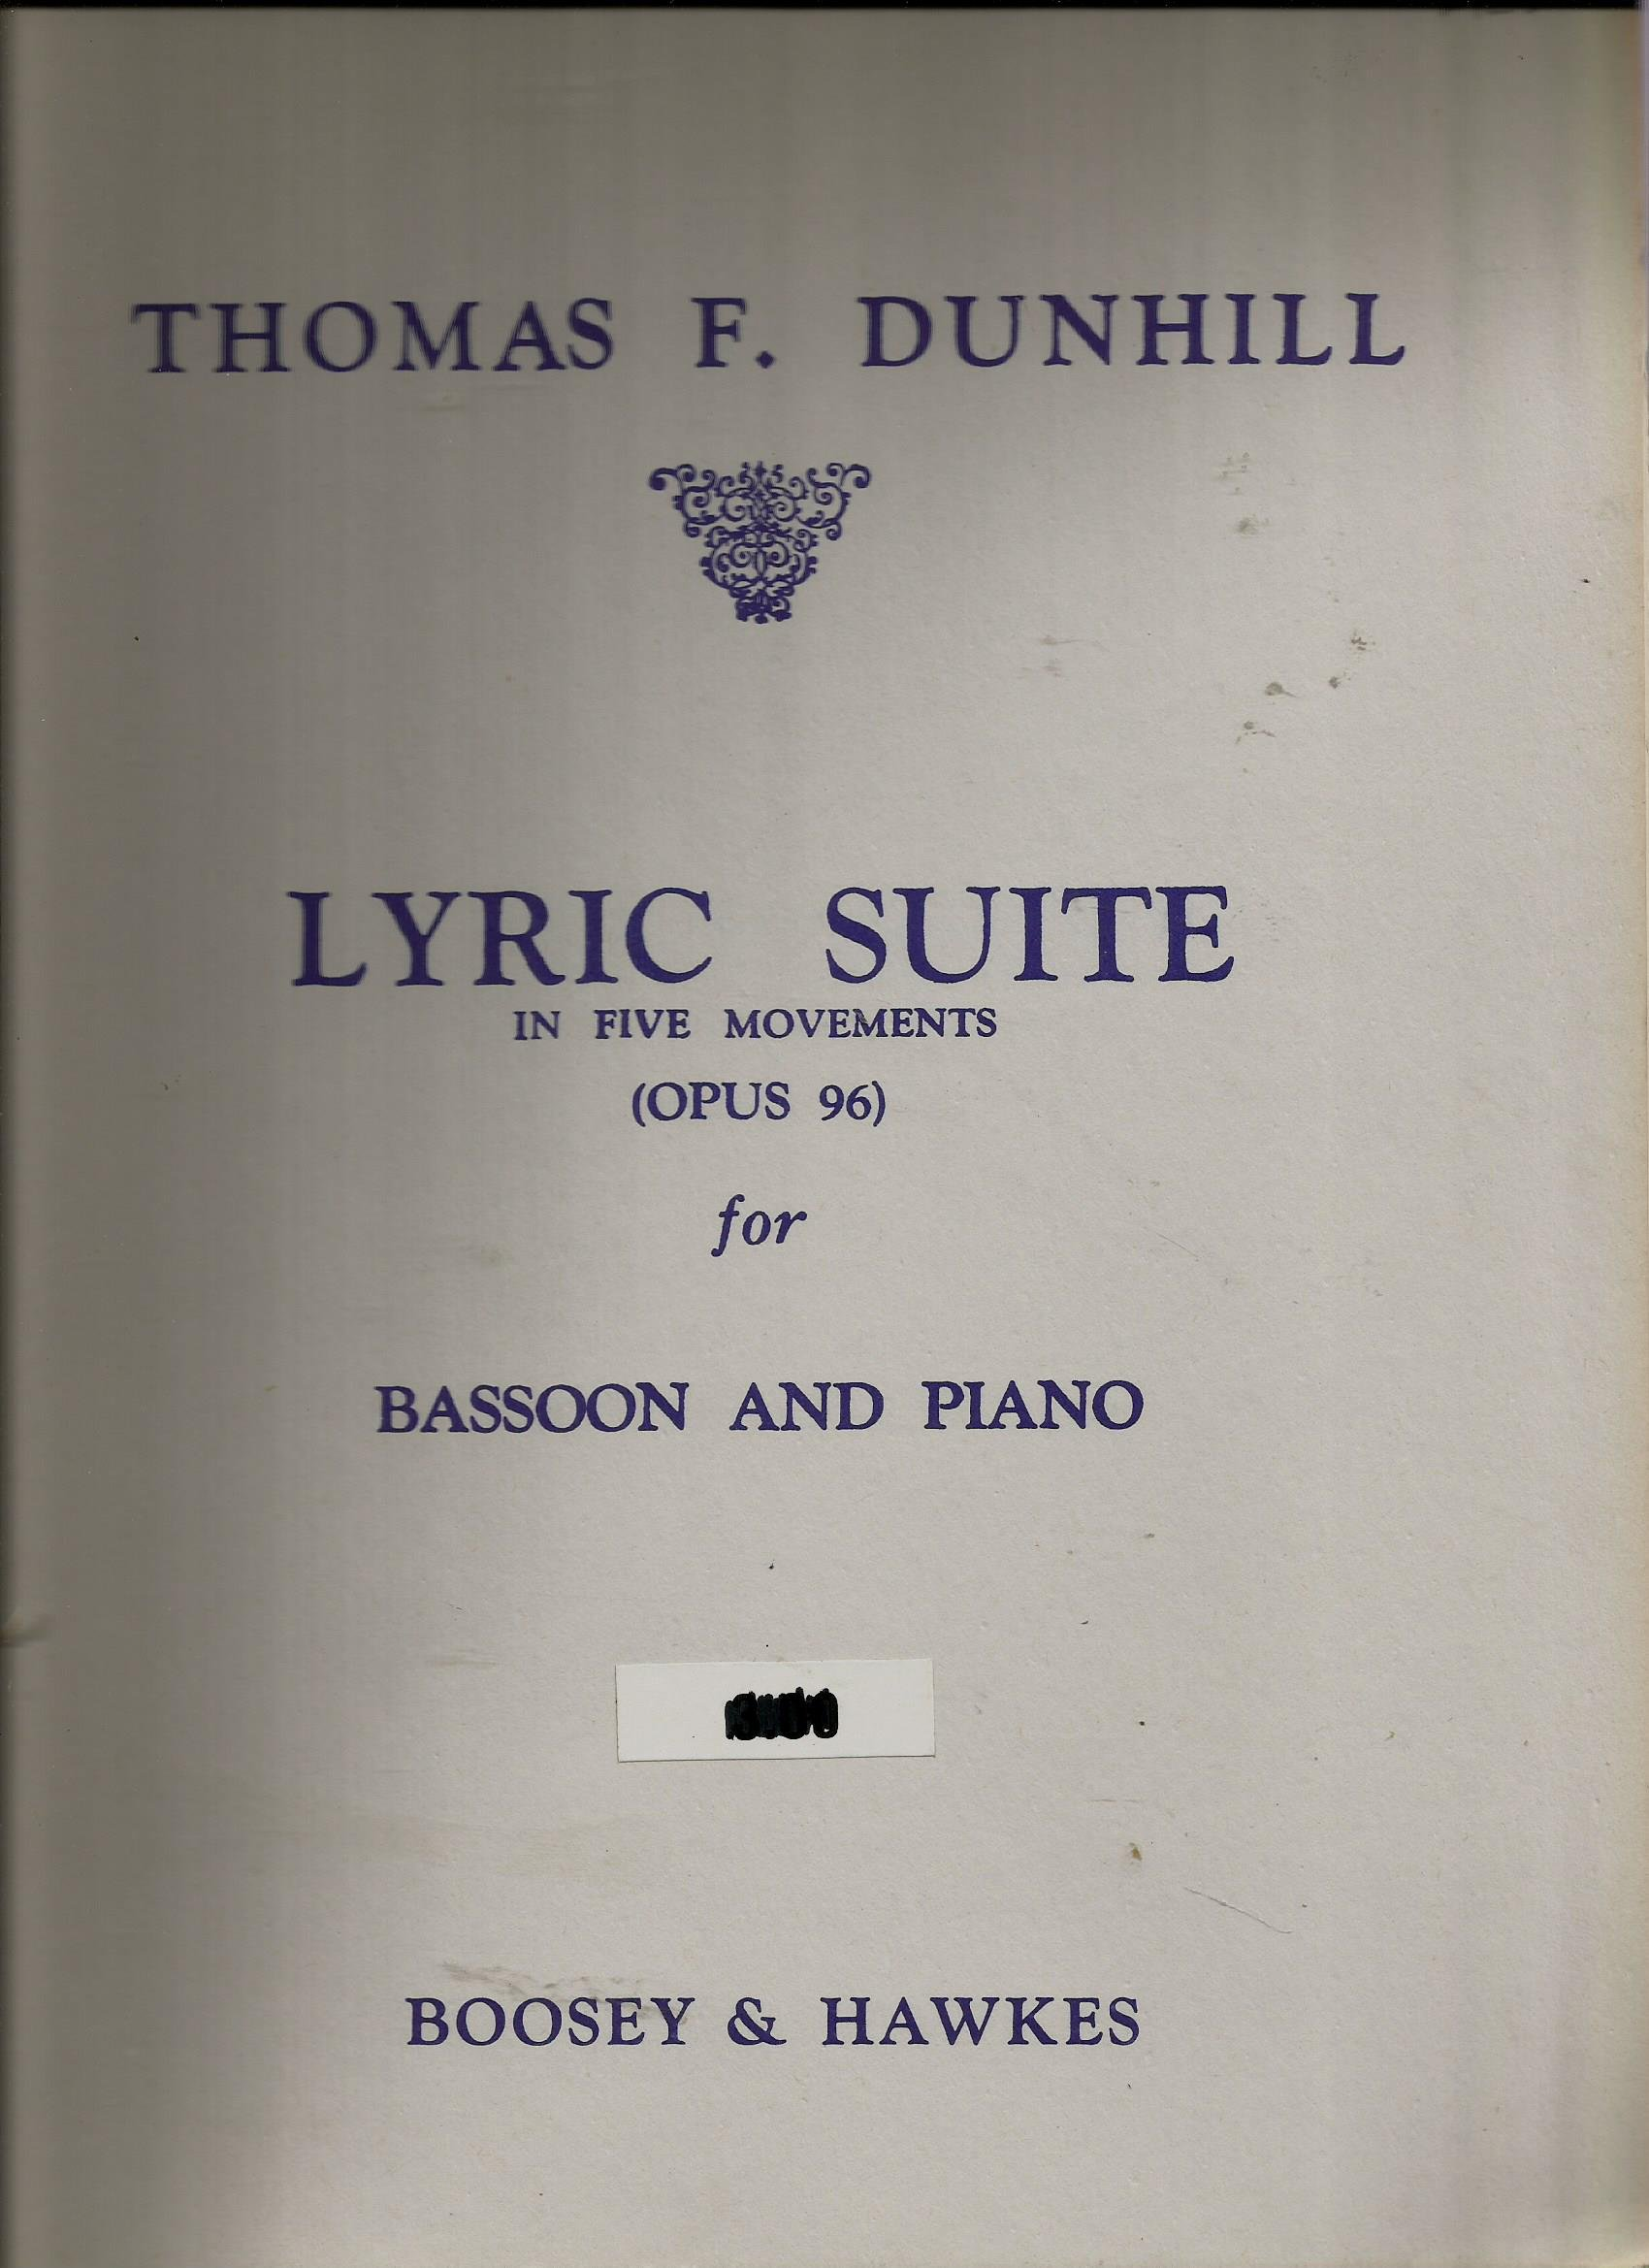 Thomas F. Dunhill Lyric Suite for Bassoon & Piano Op.96 Boosey & Hawkes